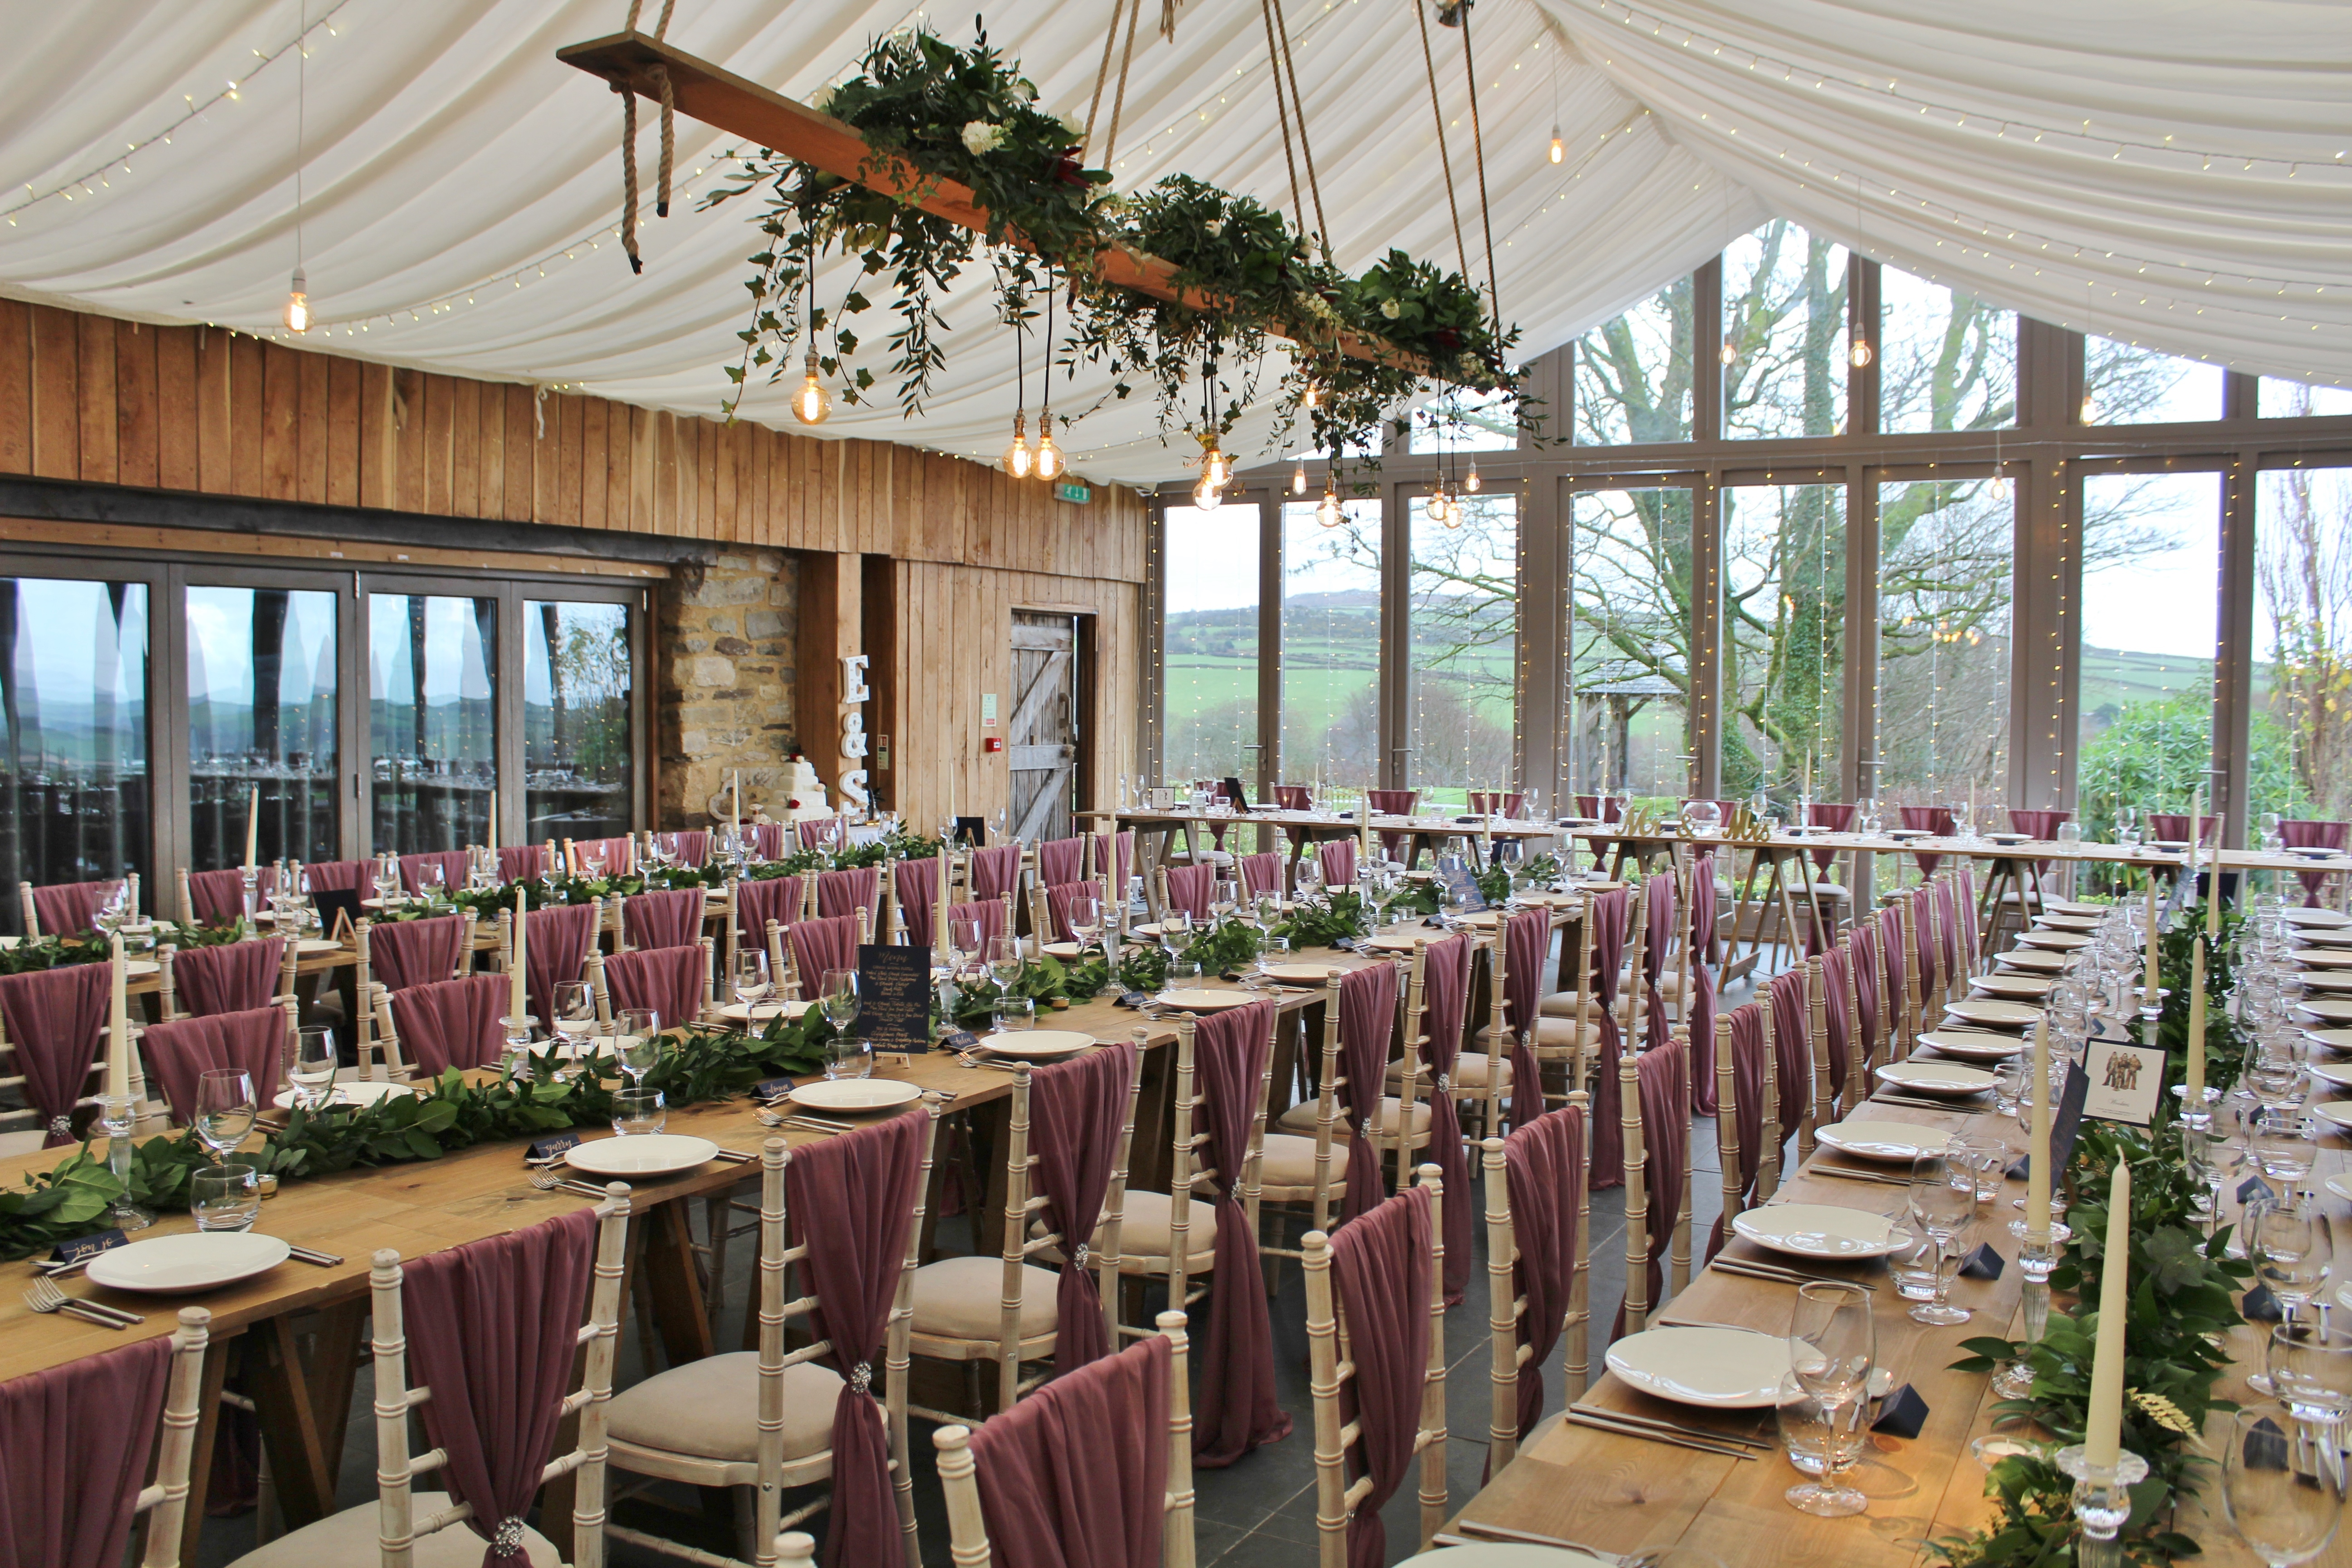 Wedding at Trevenna Barns.